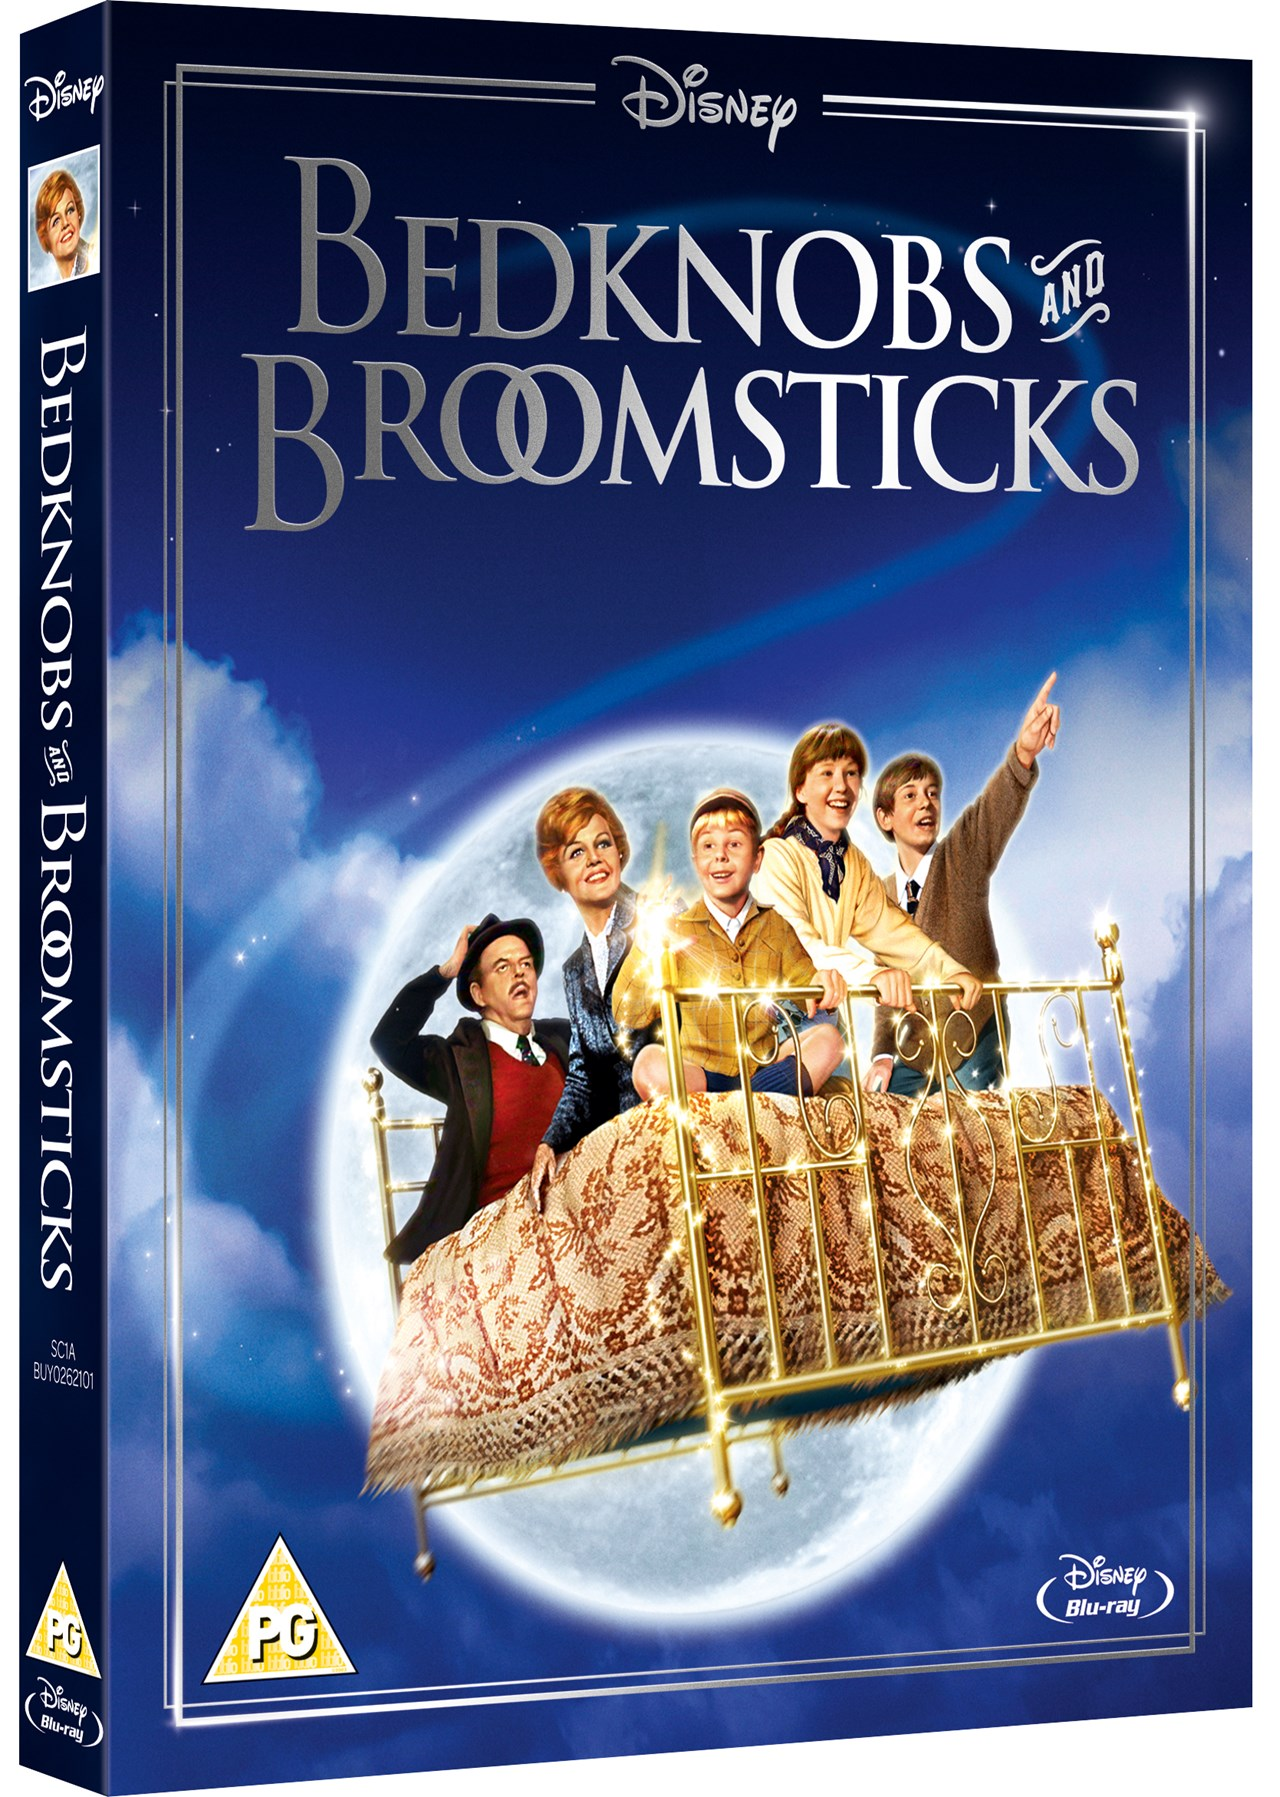 Bedknobs and Broomsticks - 2